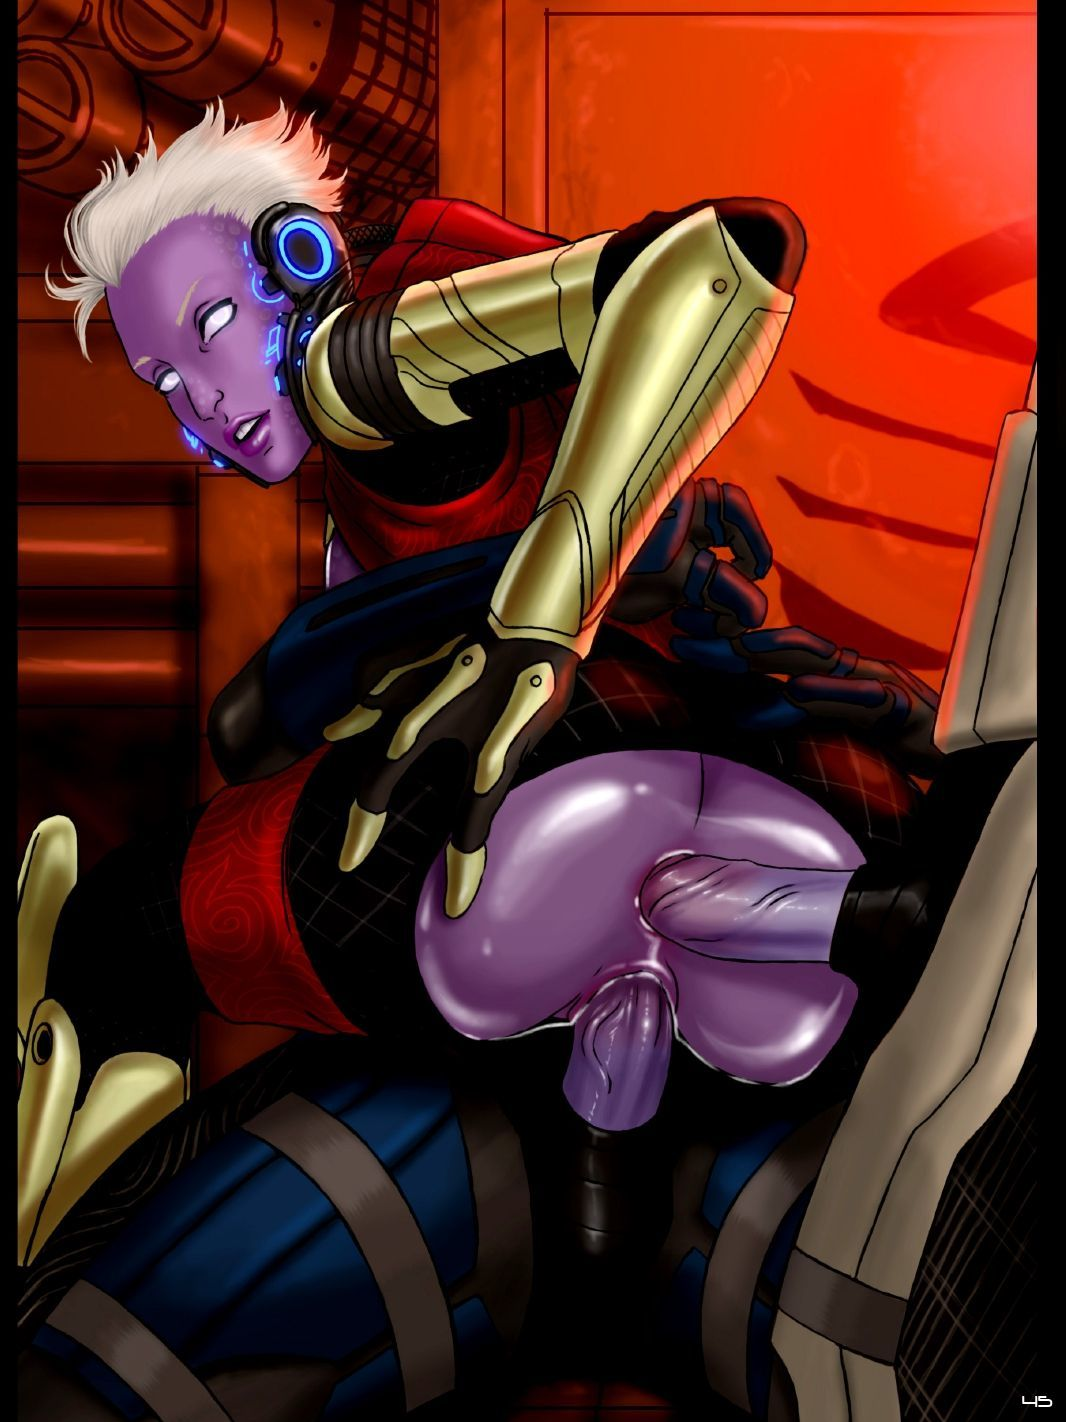 FORNAX_The_galaxys_finest_xenophilia_(Mass_Effect) comix_58070.jpg